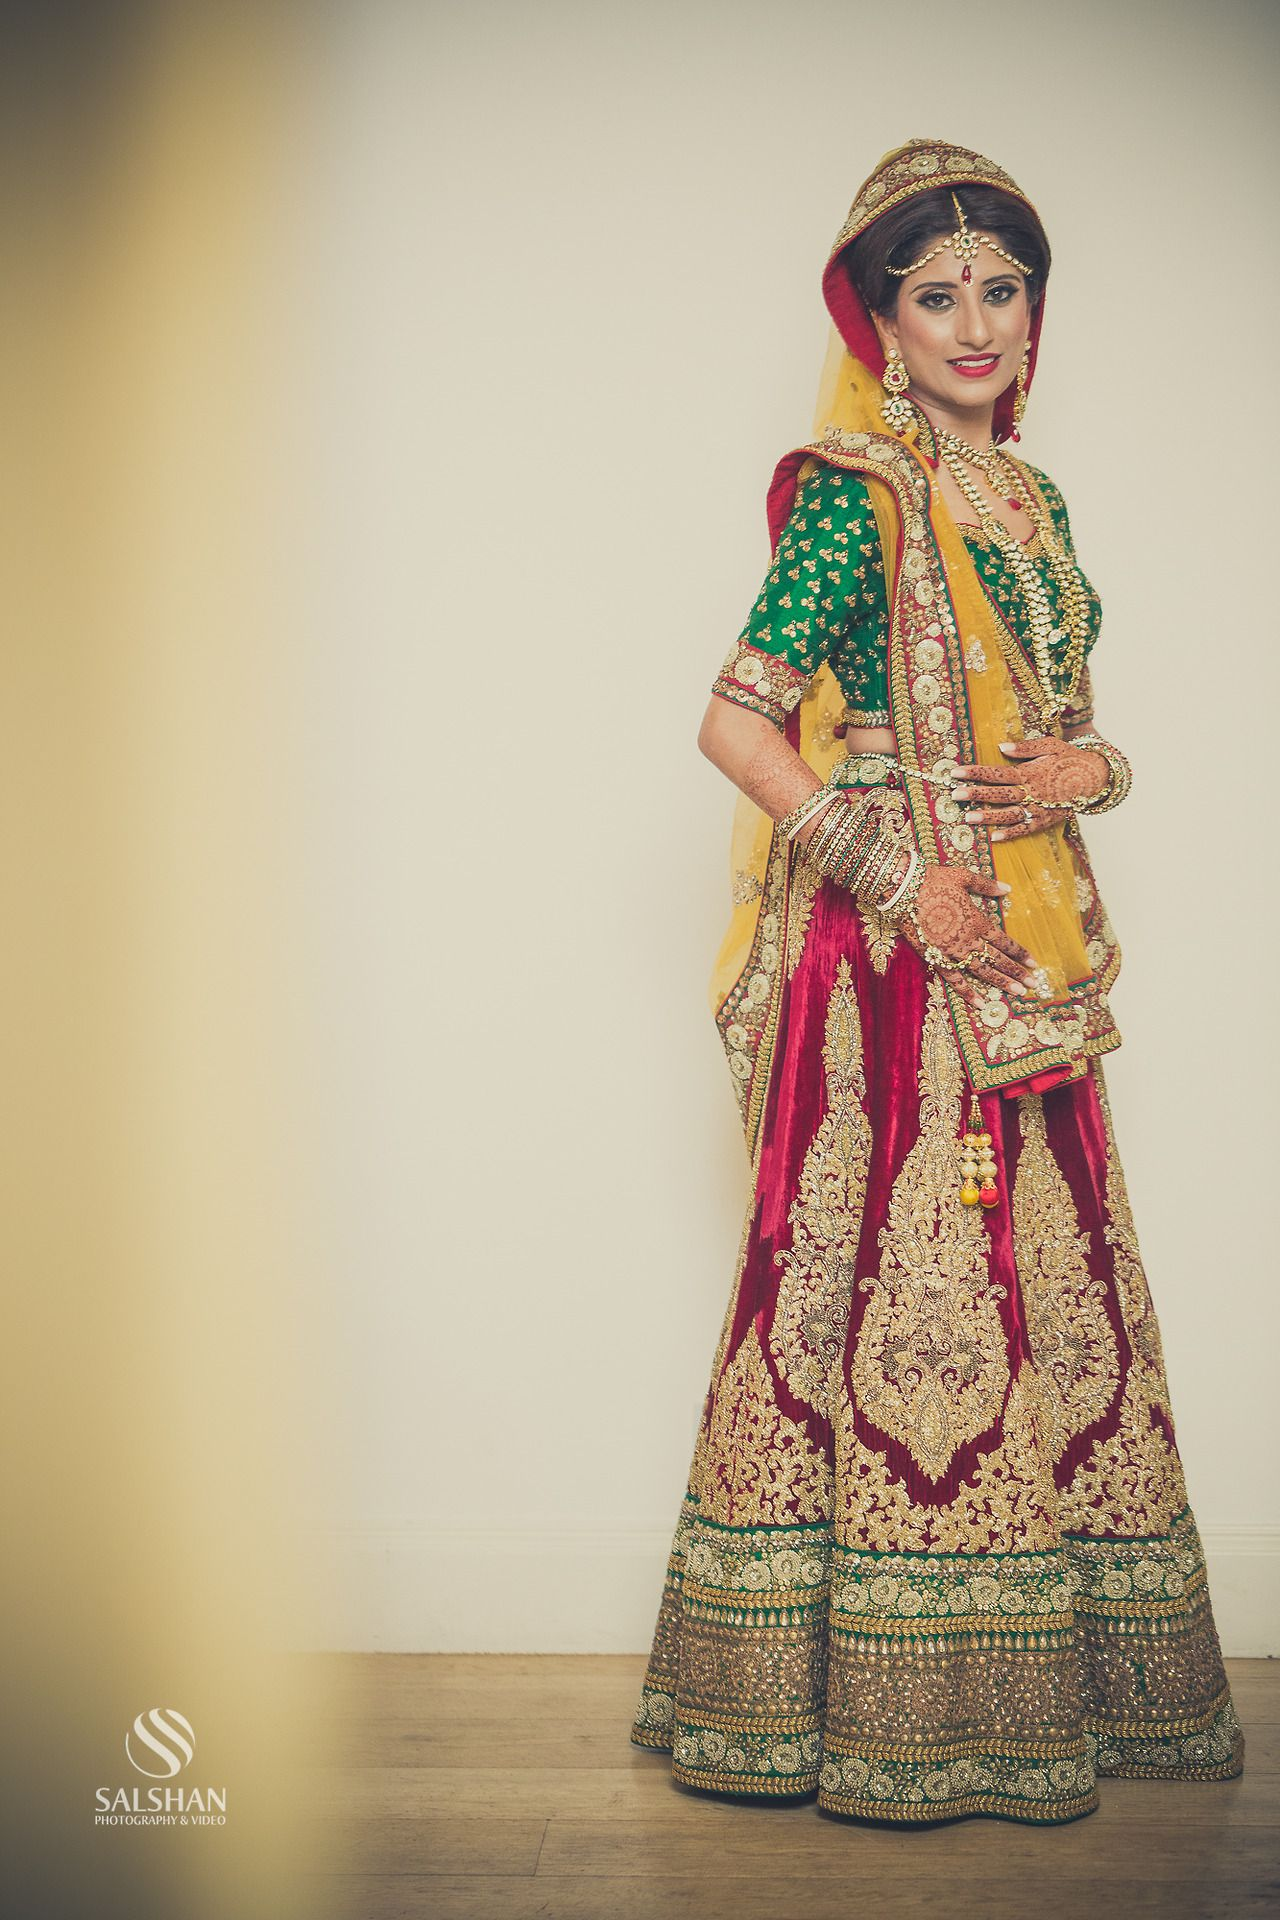 Milchglas Küchenspiegel Indian Wedding Dress Colorful Lehenga Desi Weddings